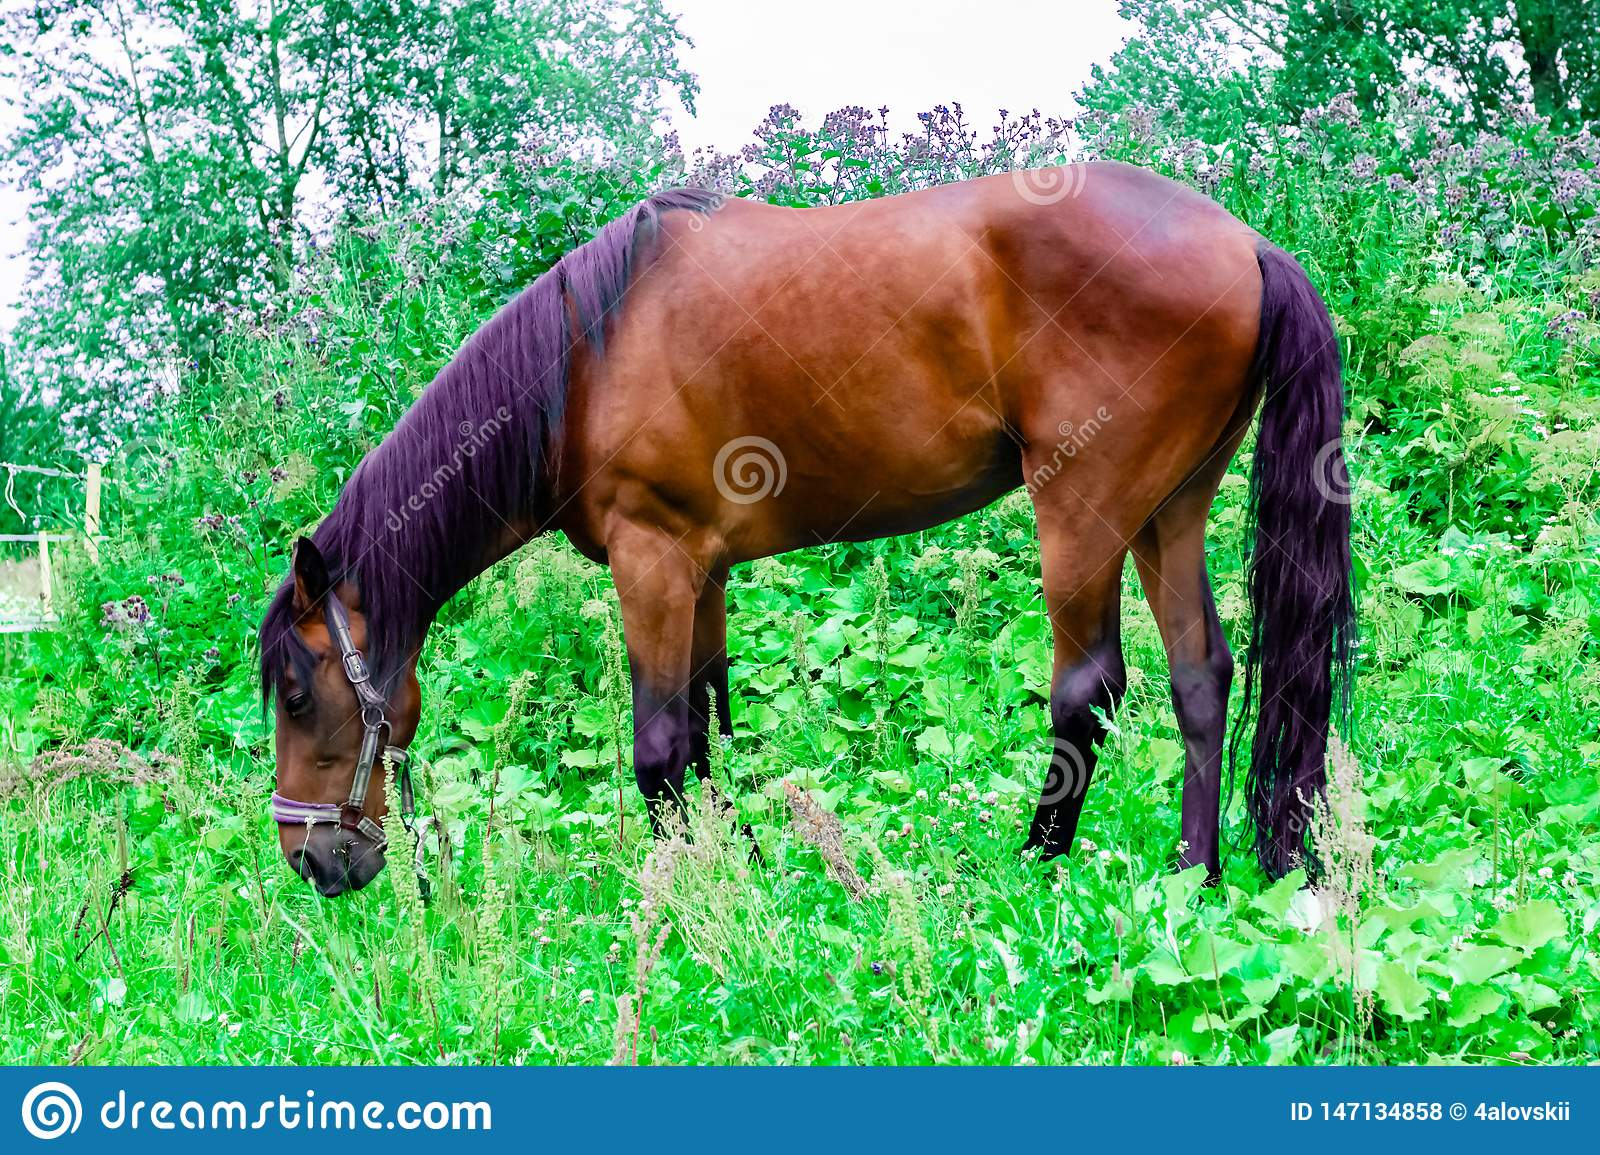 Beautiful chestnut horse with a black and purple mane grazes on a green pasture